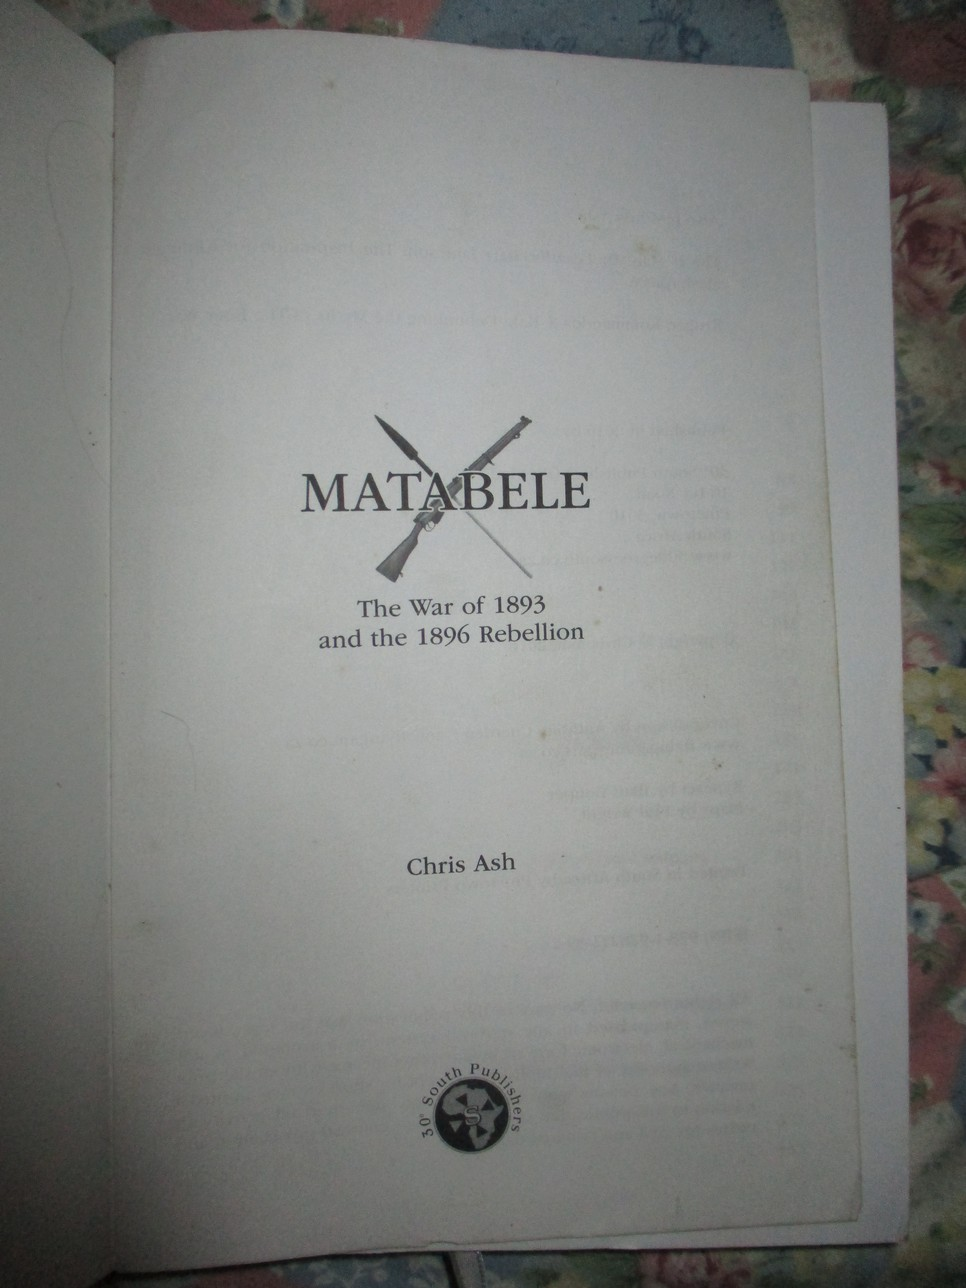 Matabele . The War of 1893 and the 1896 Rebellion